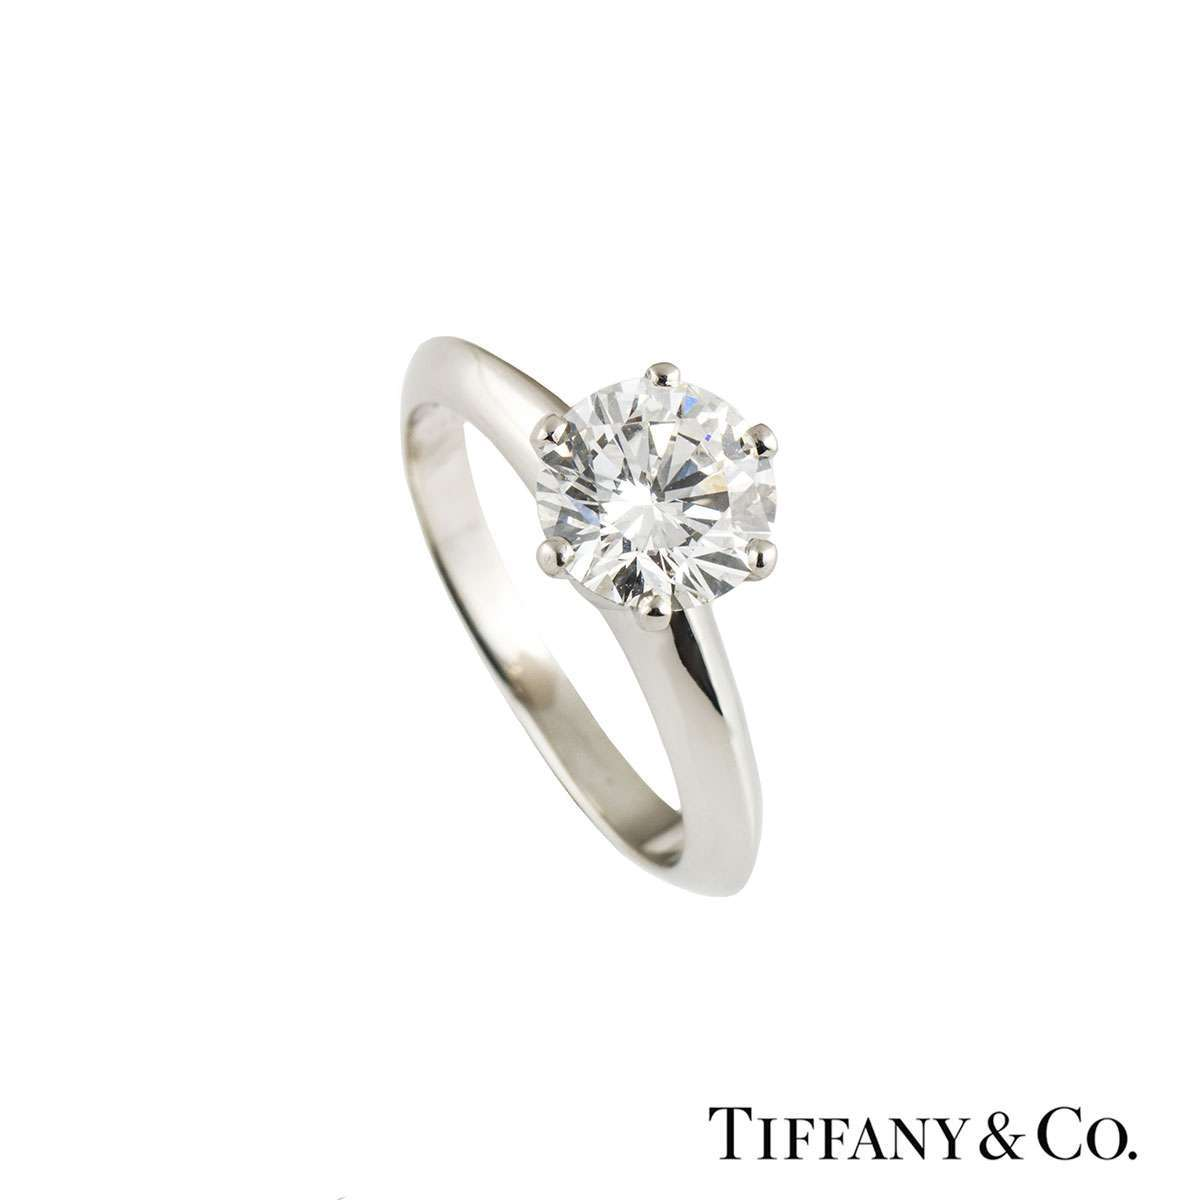 ff537ee146e09 Tiffany & Co. Setting Ring